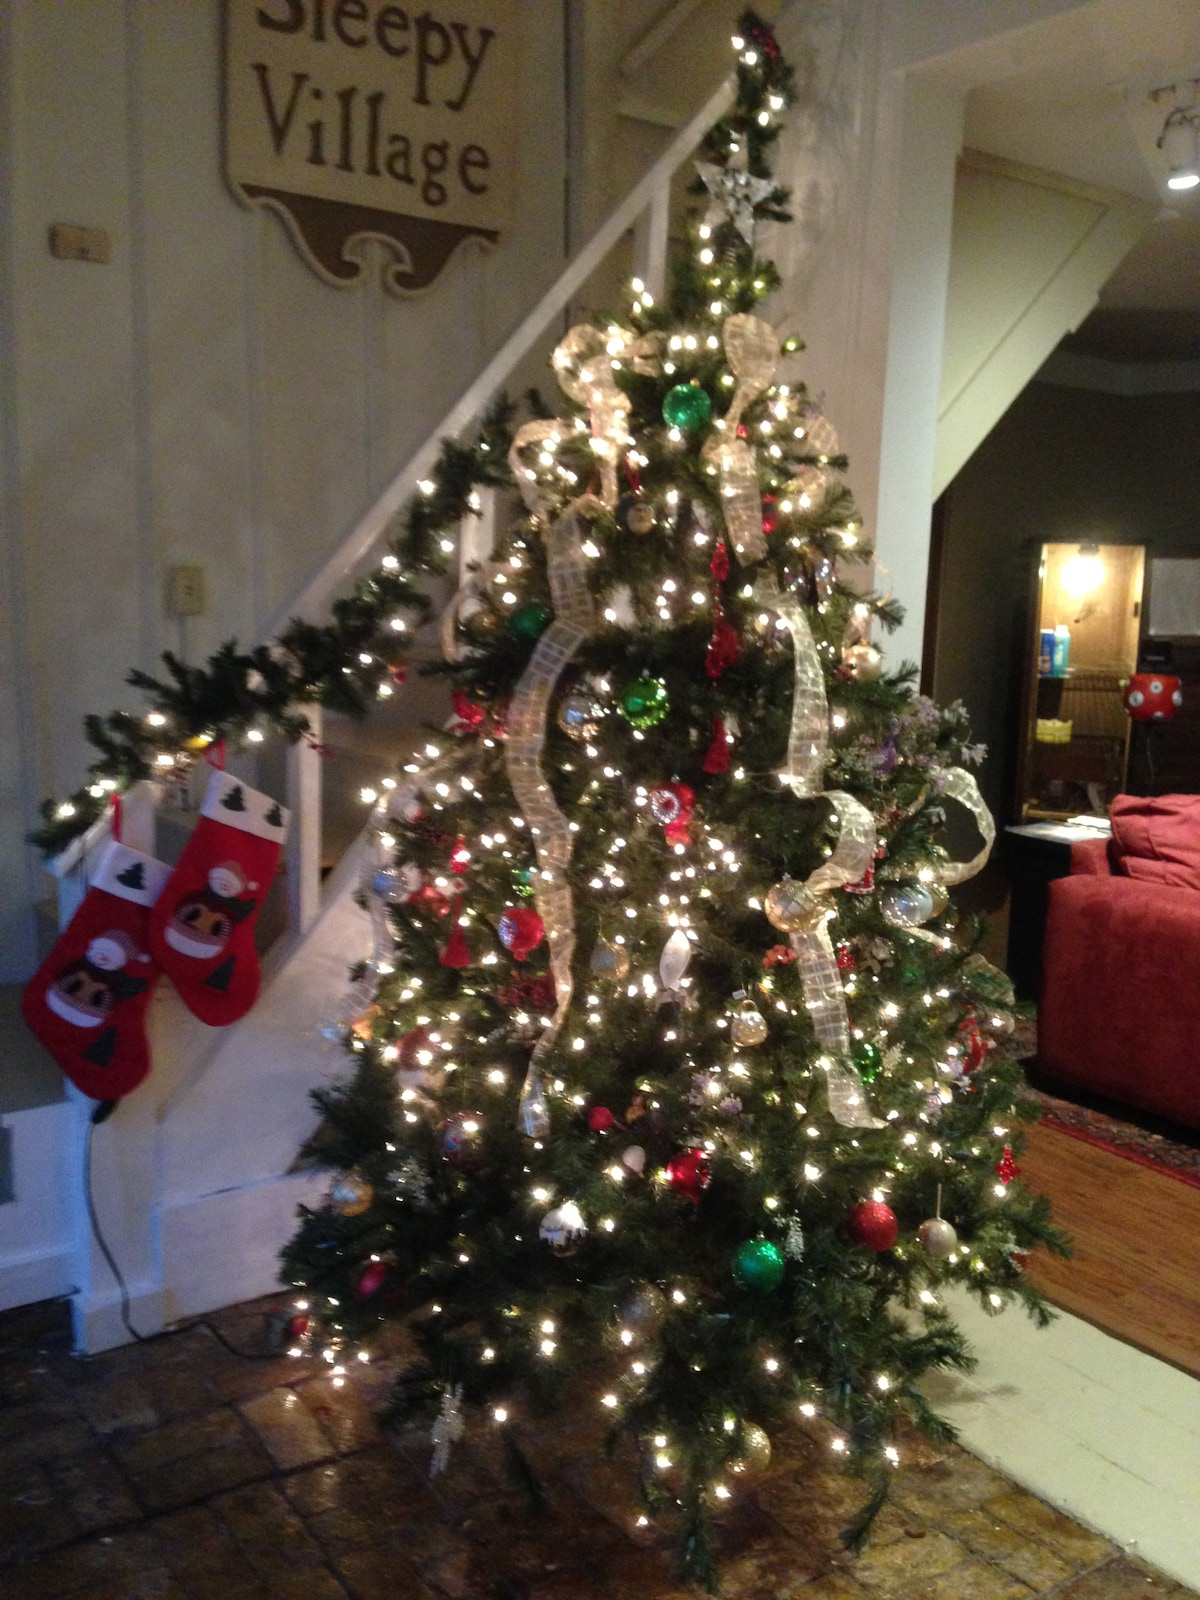 Christmas tree and stockings welcome guests